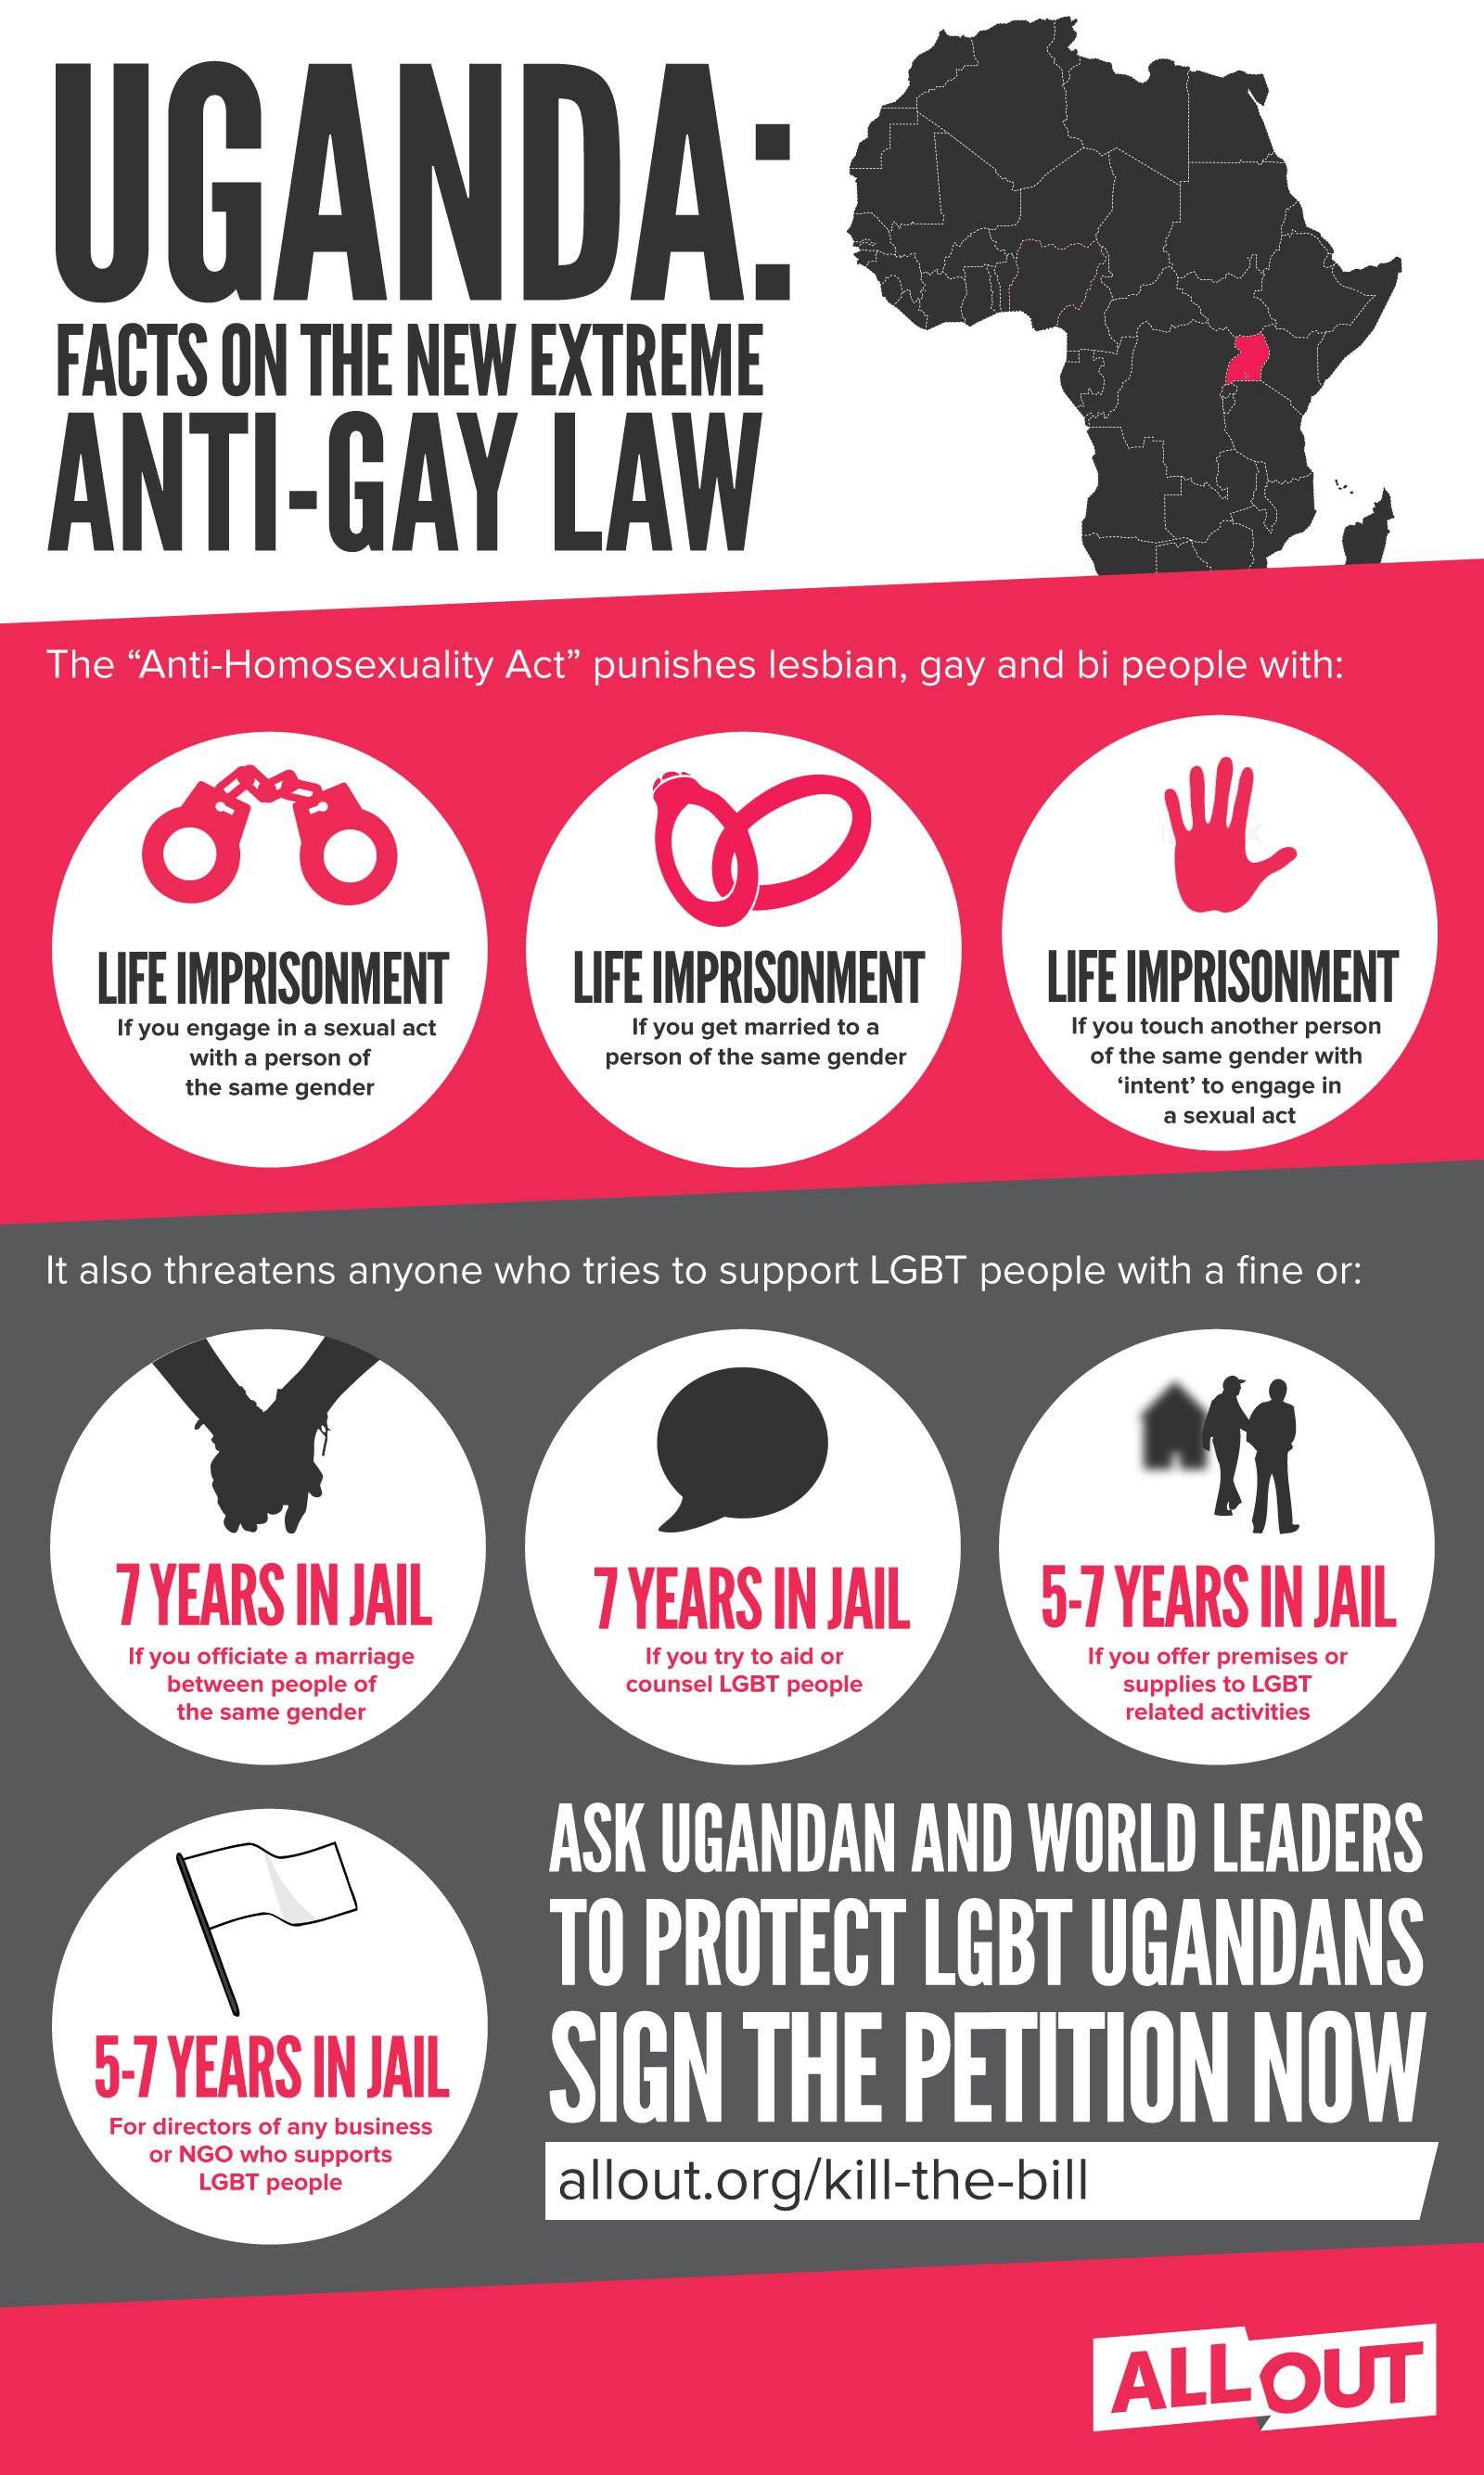 All-Out-UGANDA-Infographic-v4-9